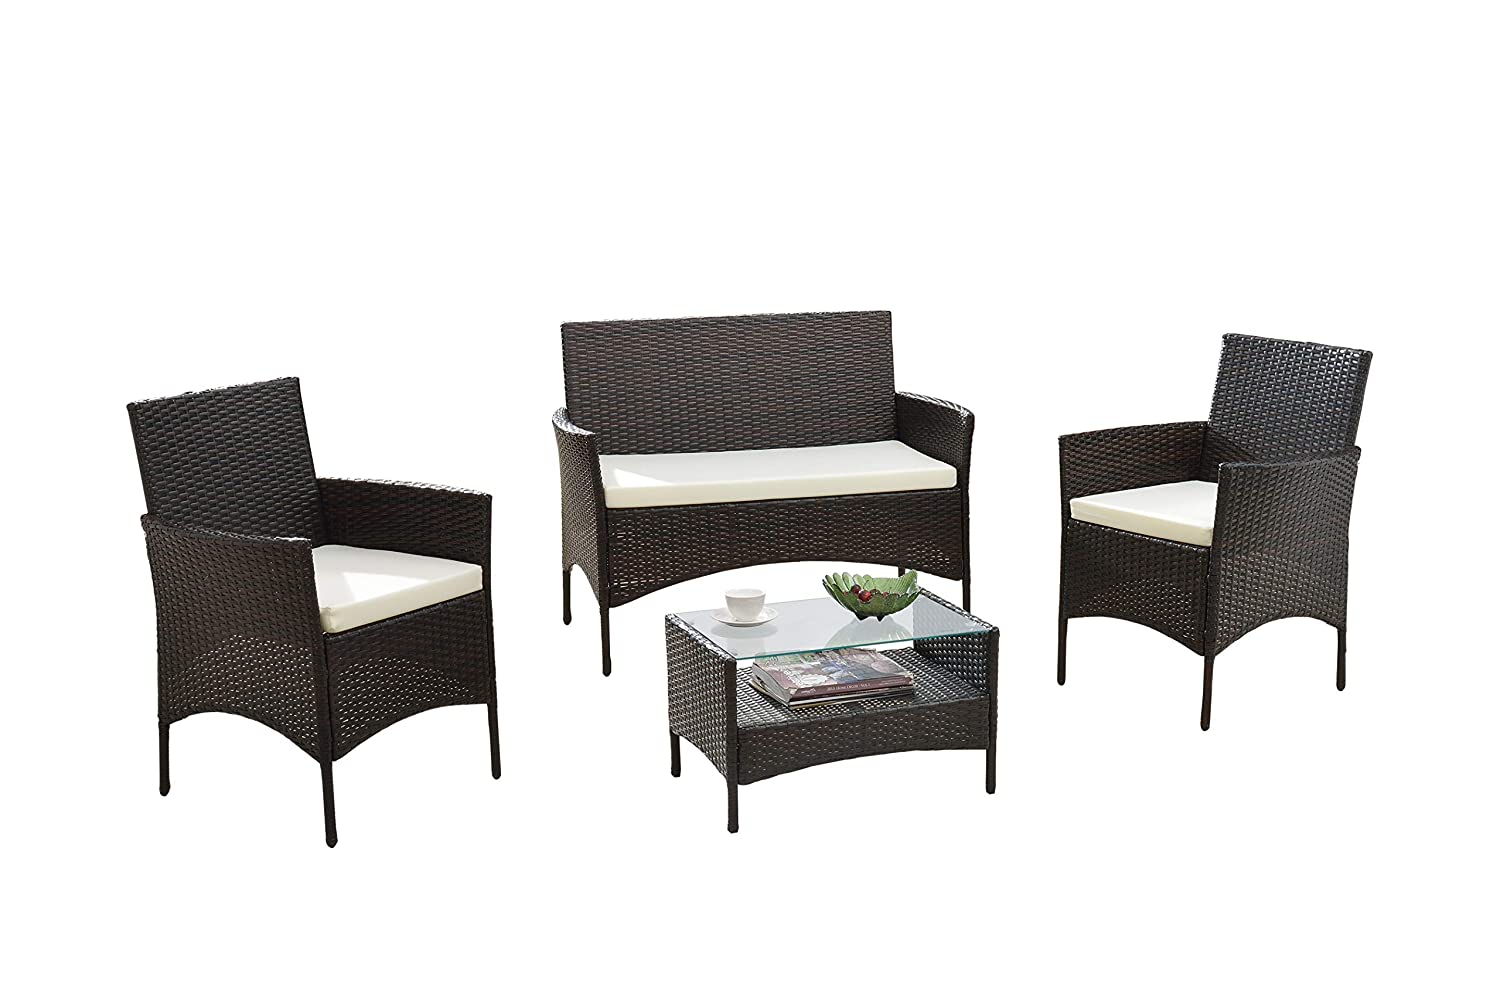 Amazon.com : Modern Outdoor Garden, Patio 4 Piece Seat - Grey, Dark ...